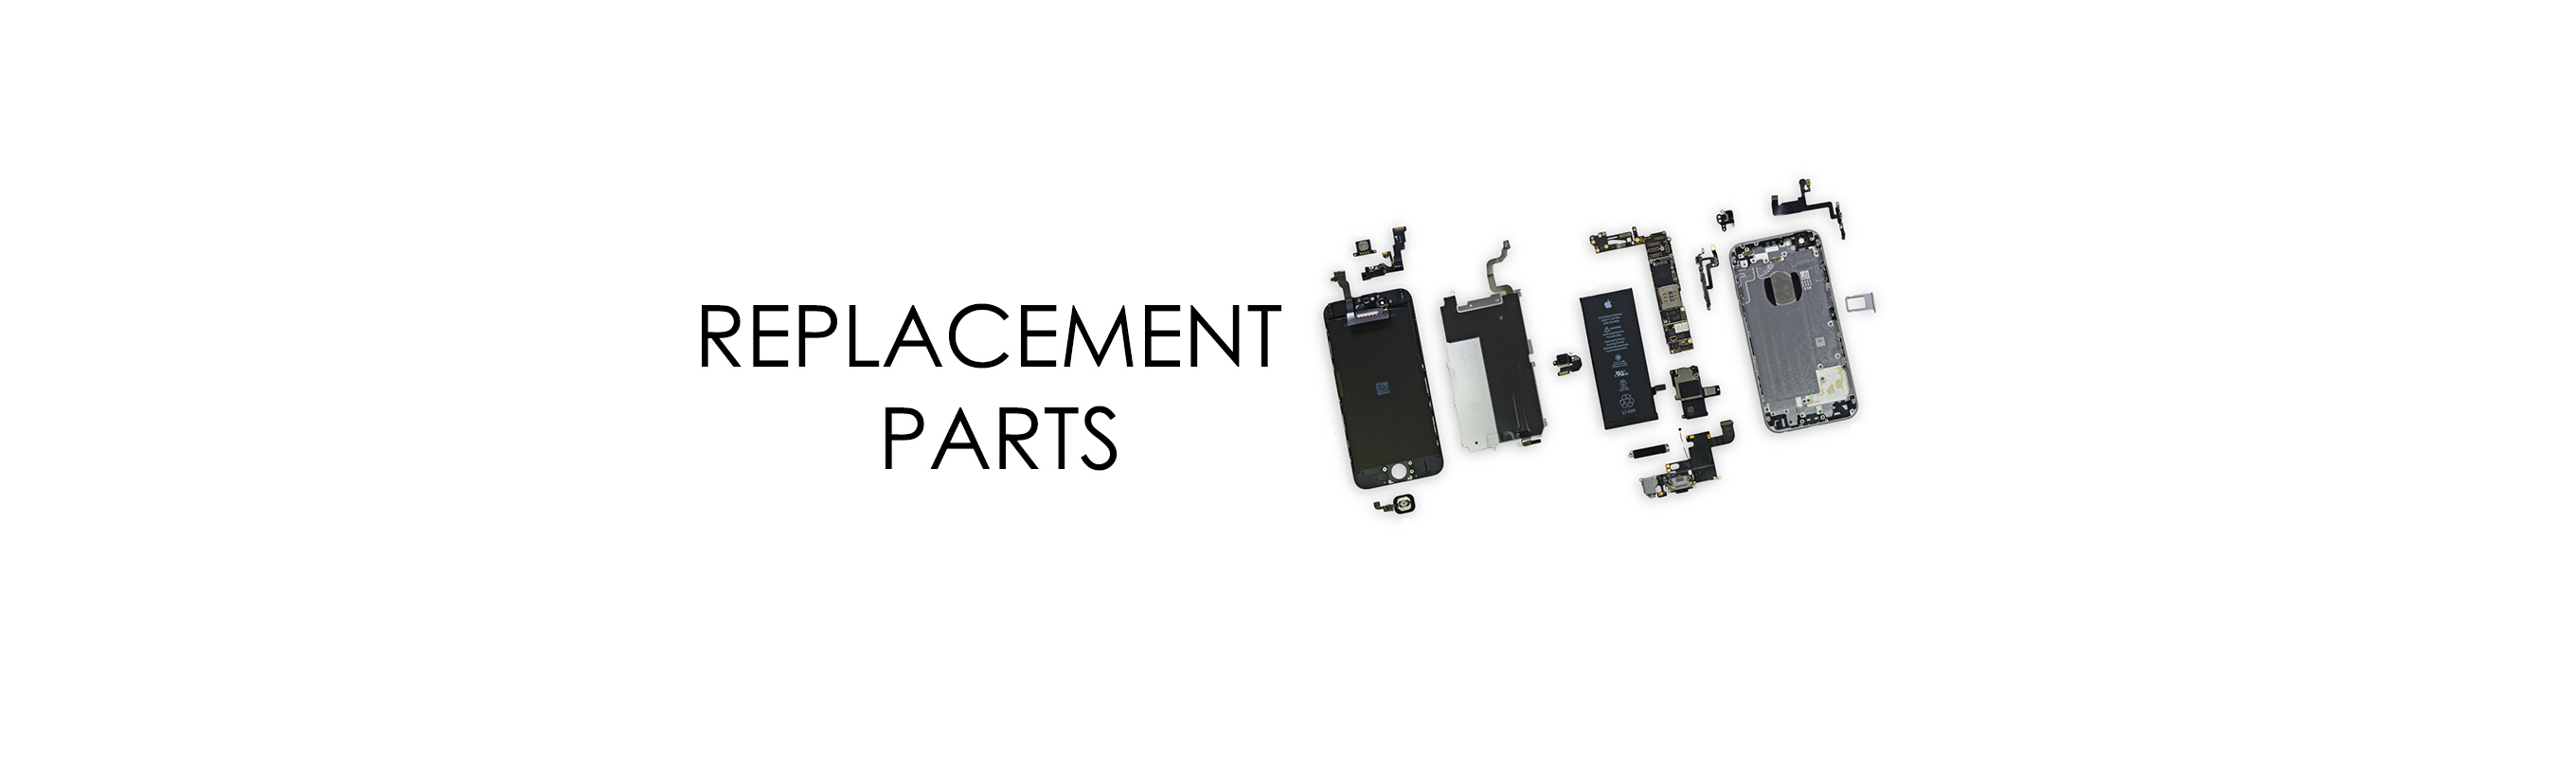 Replacement Parts for iPhone 6s